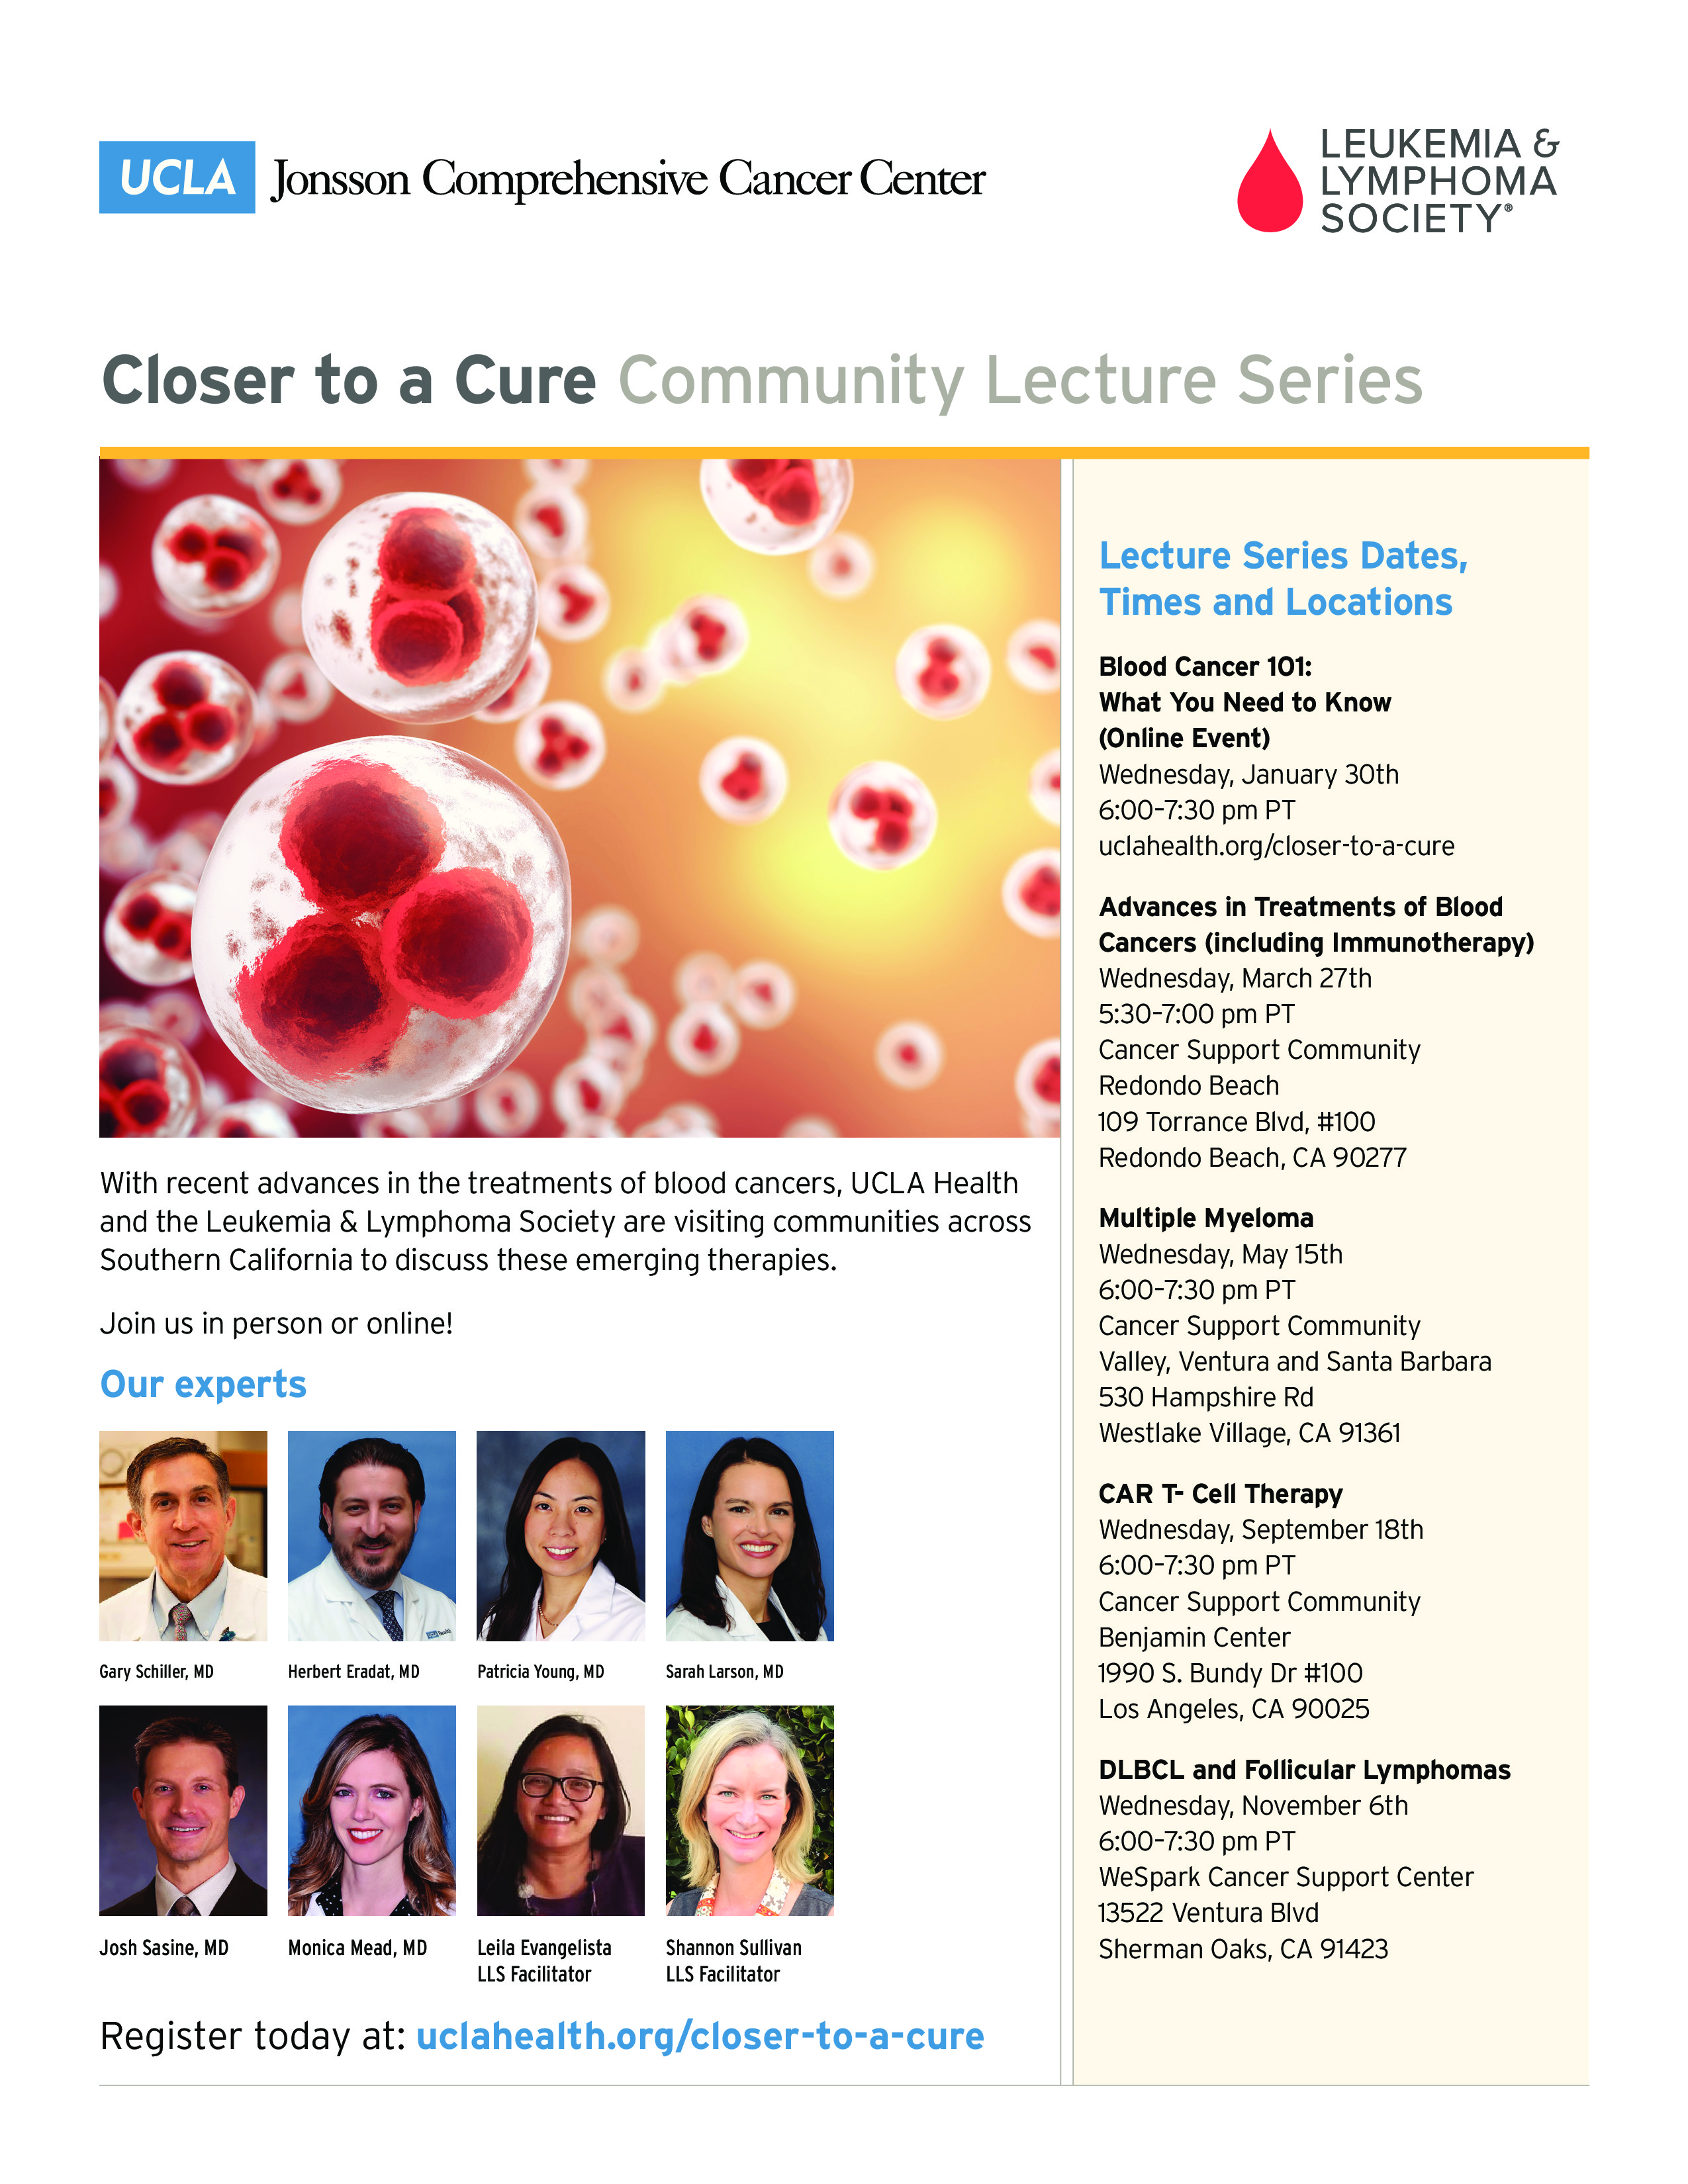 Closer to a Cure Lecture Series: Multiple Myeloma | Leukemia and